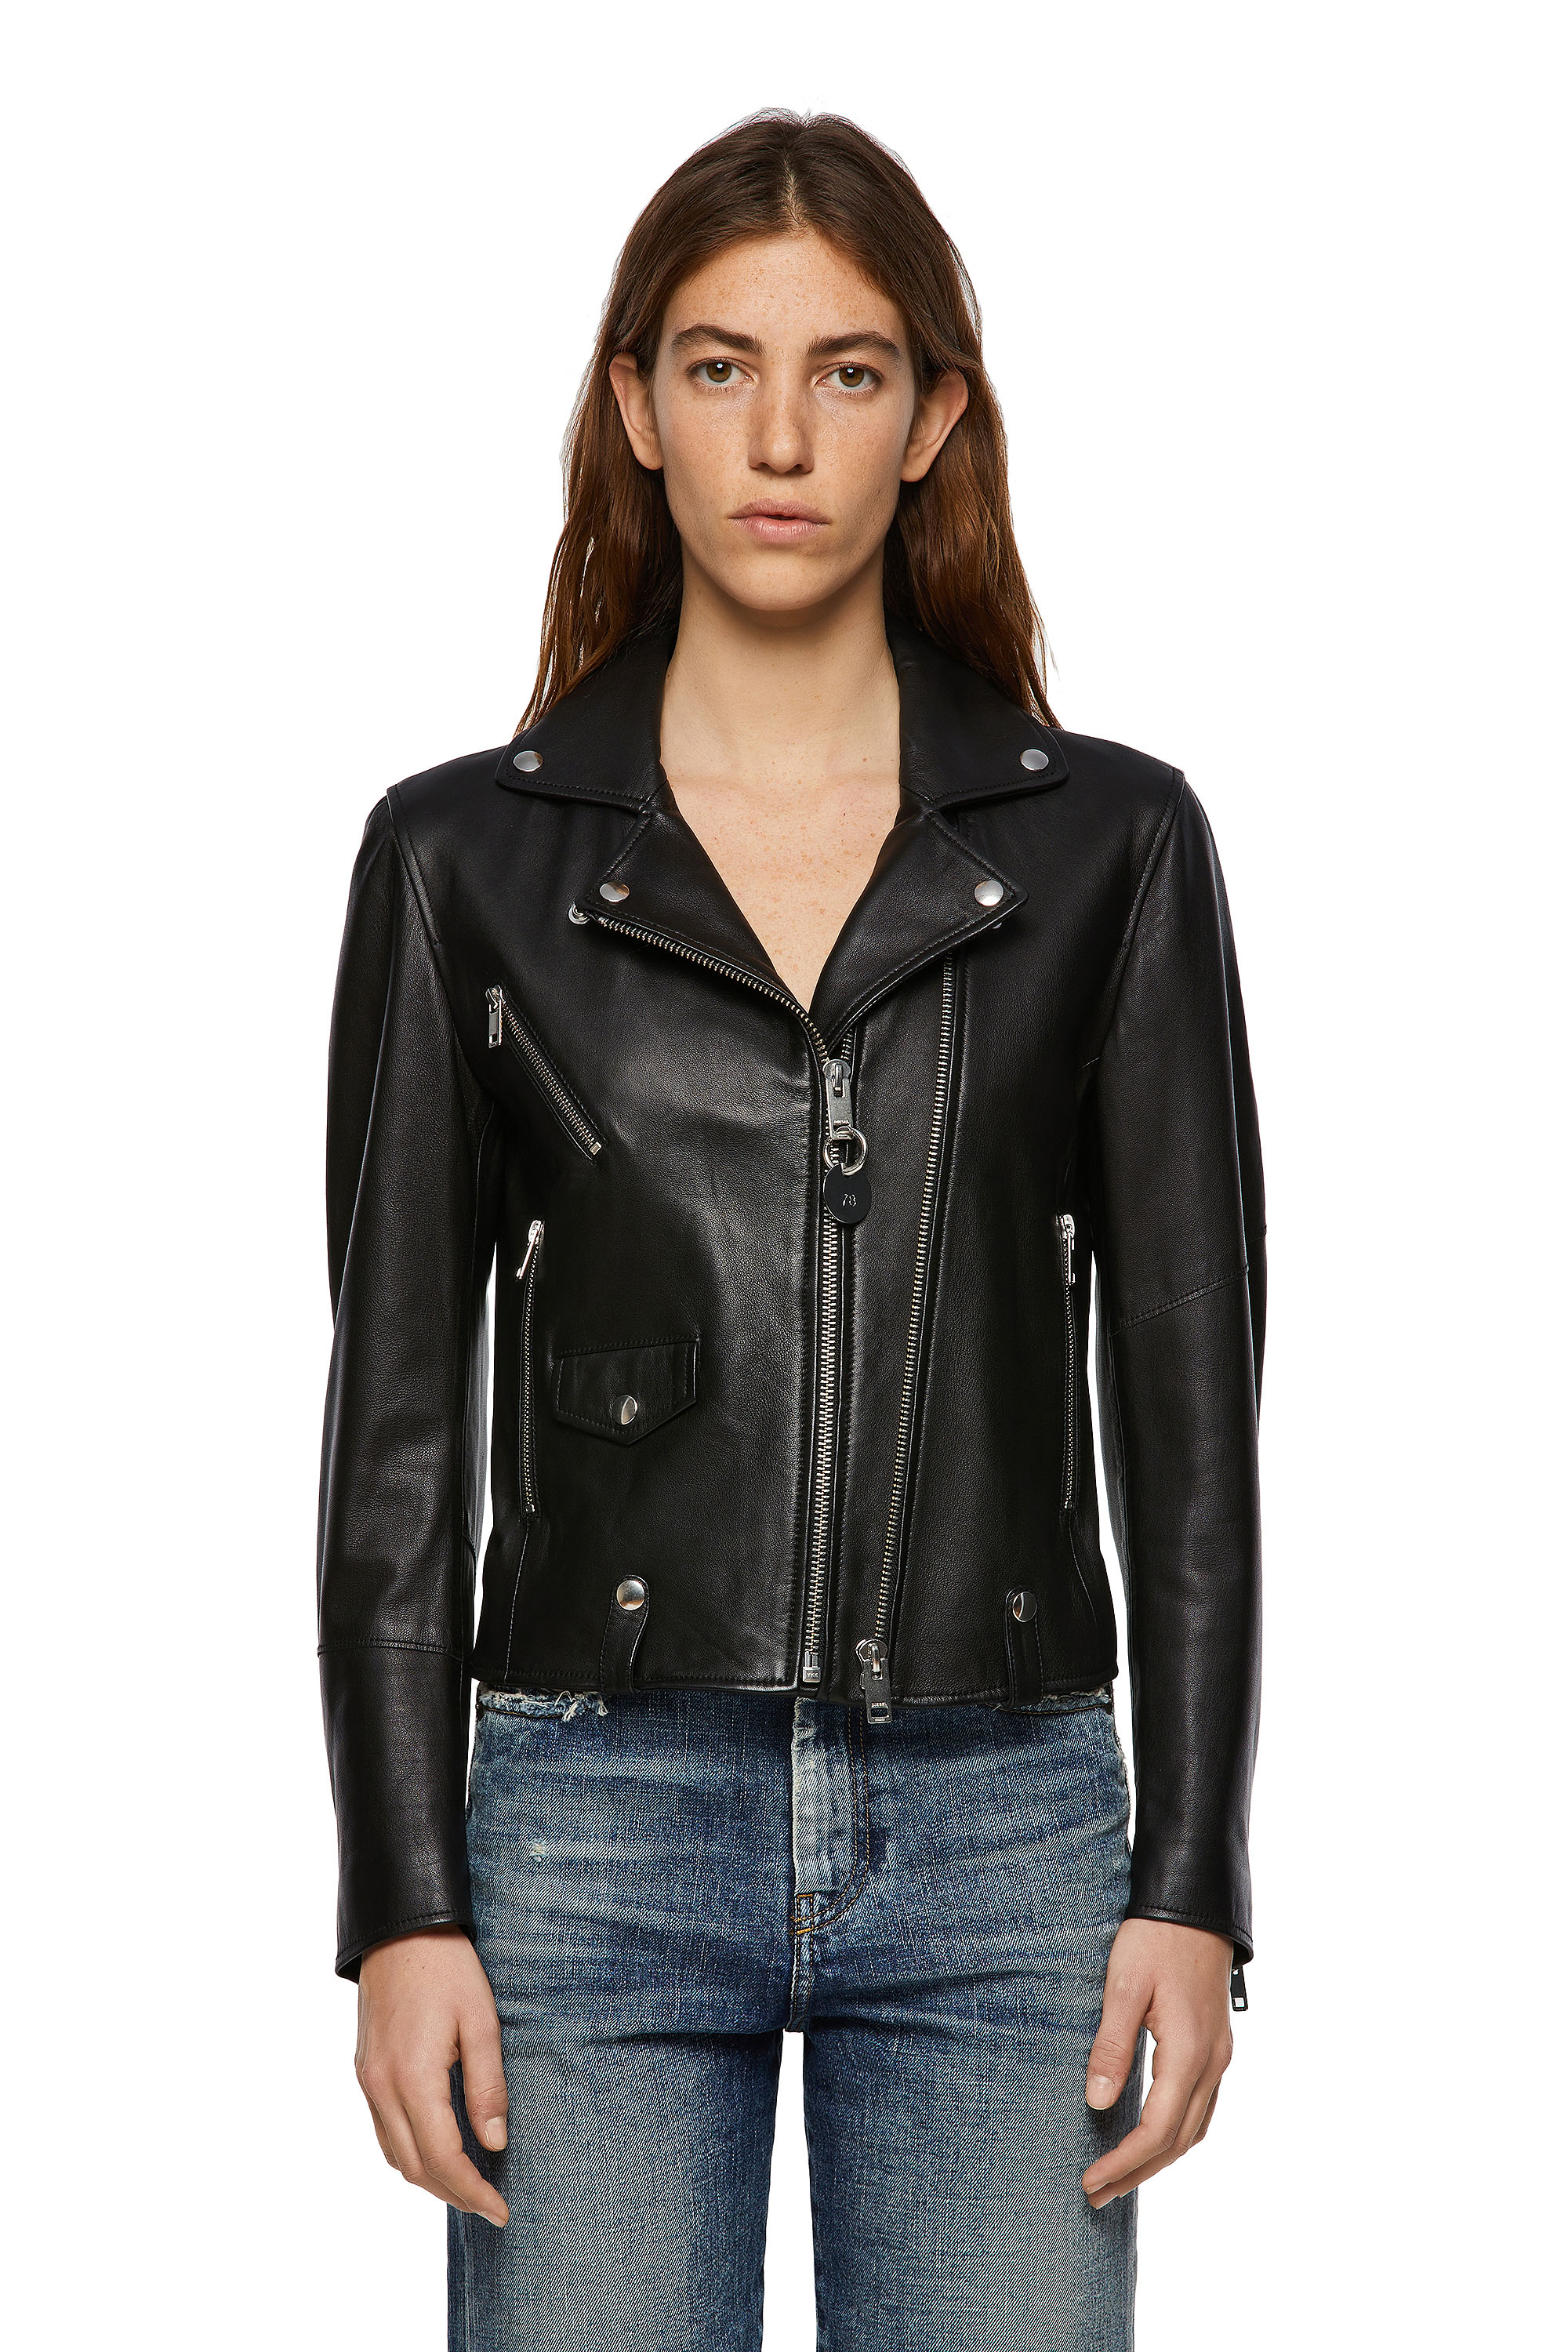 Diesel - L-LYFA,  - Leather jackets - Image 1